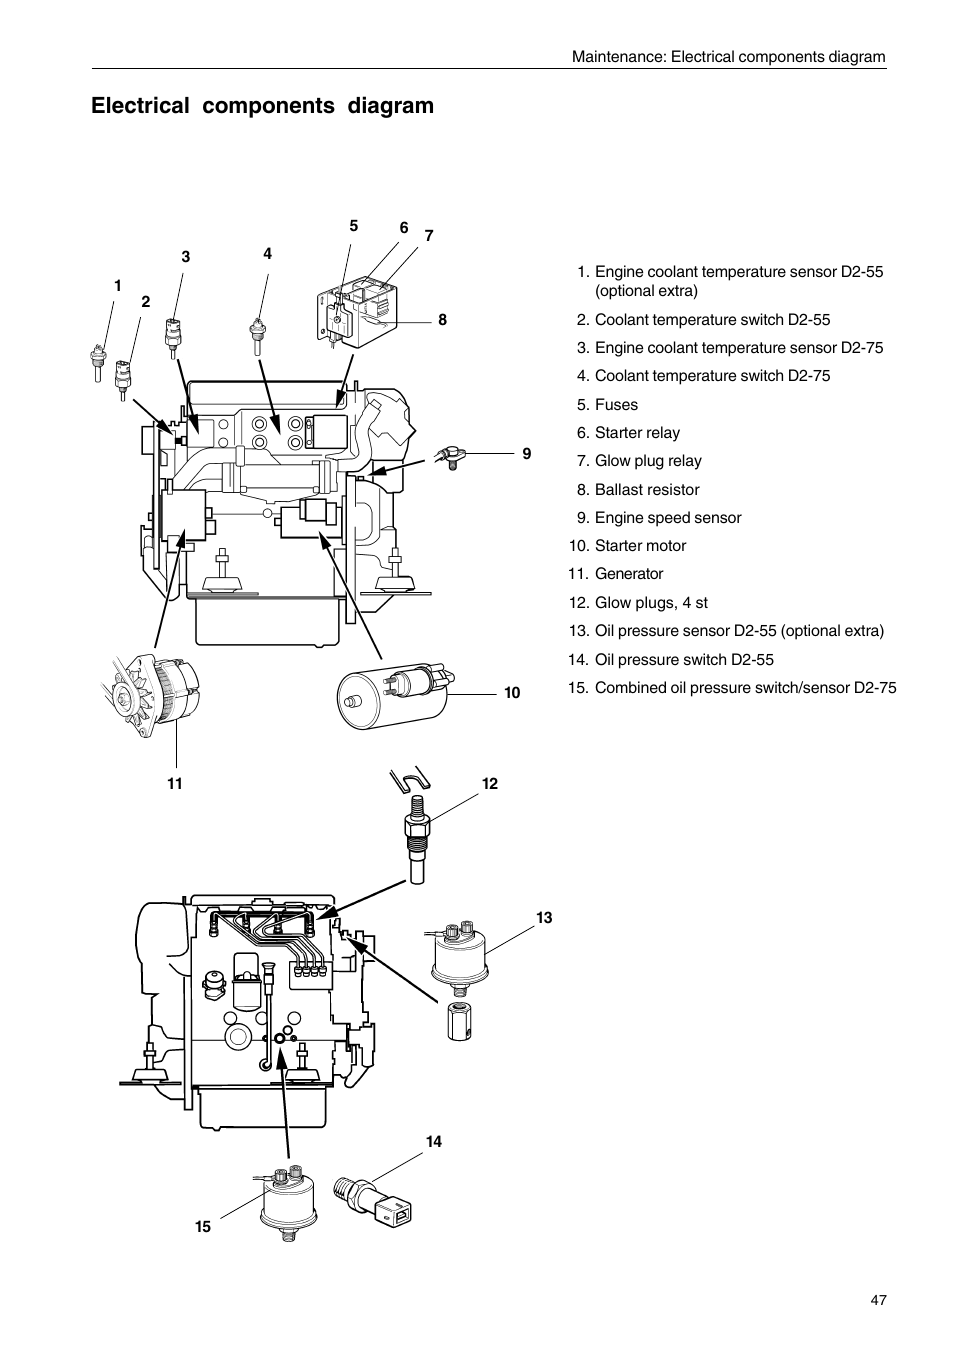 Electrical components diagram | Volvo Penta D2-75 User Manual | Page 49 / 68